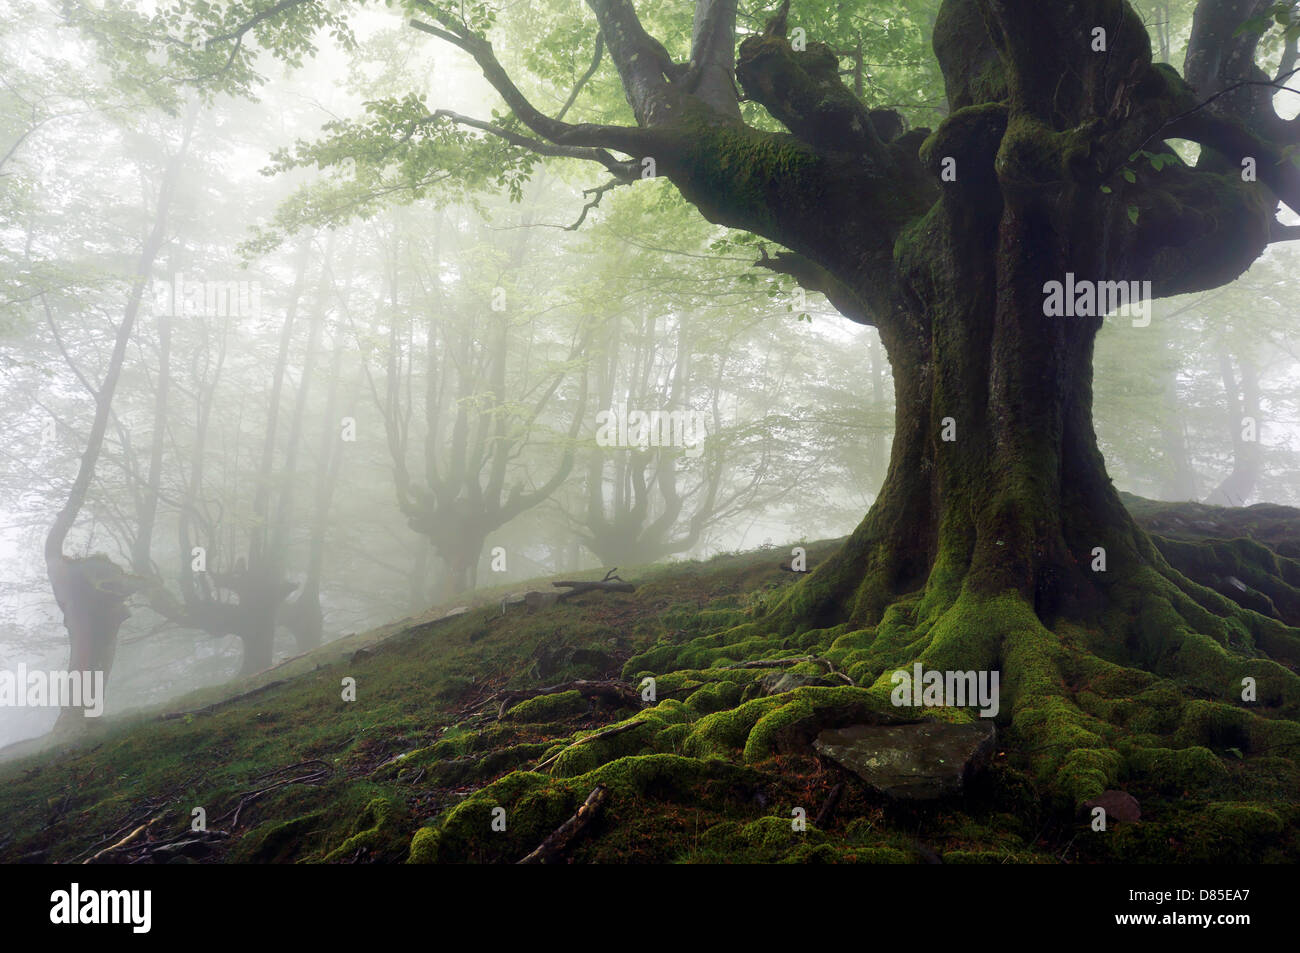 foggy forest with mysterious trees with twisted roots - Stock Image